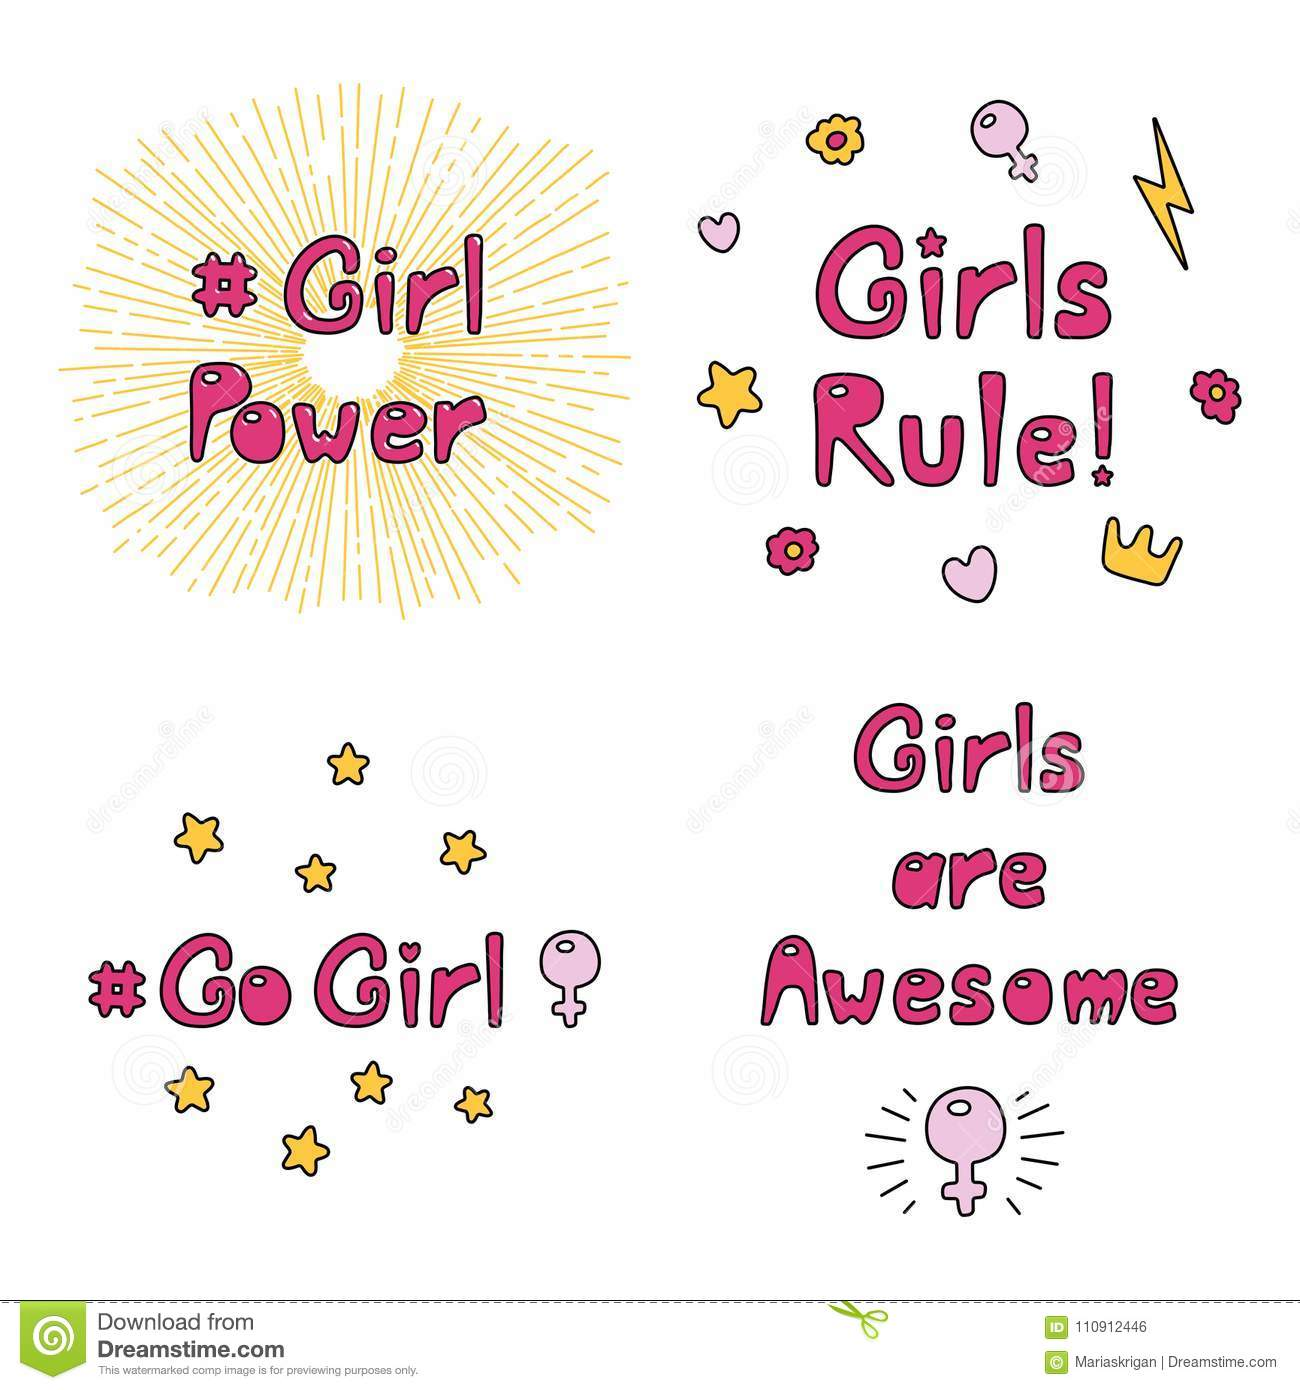 Girl power quotes collection